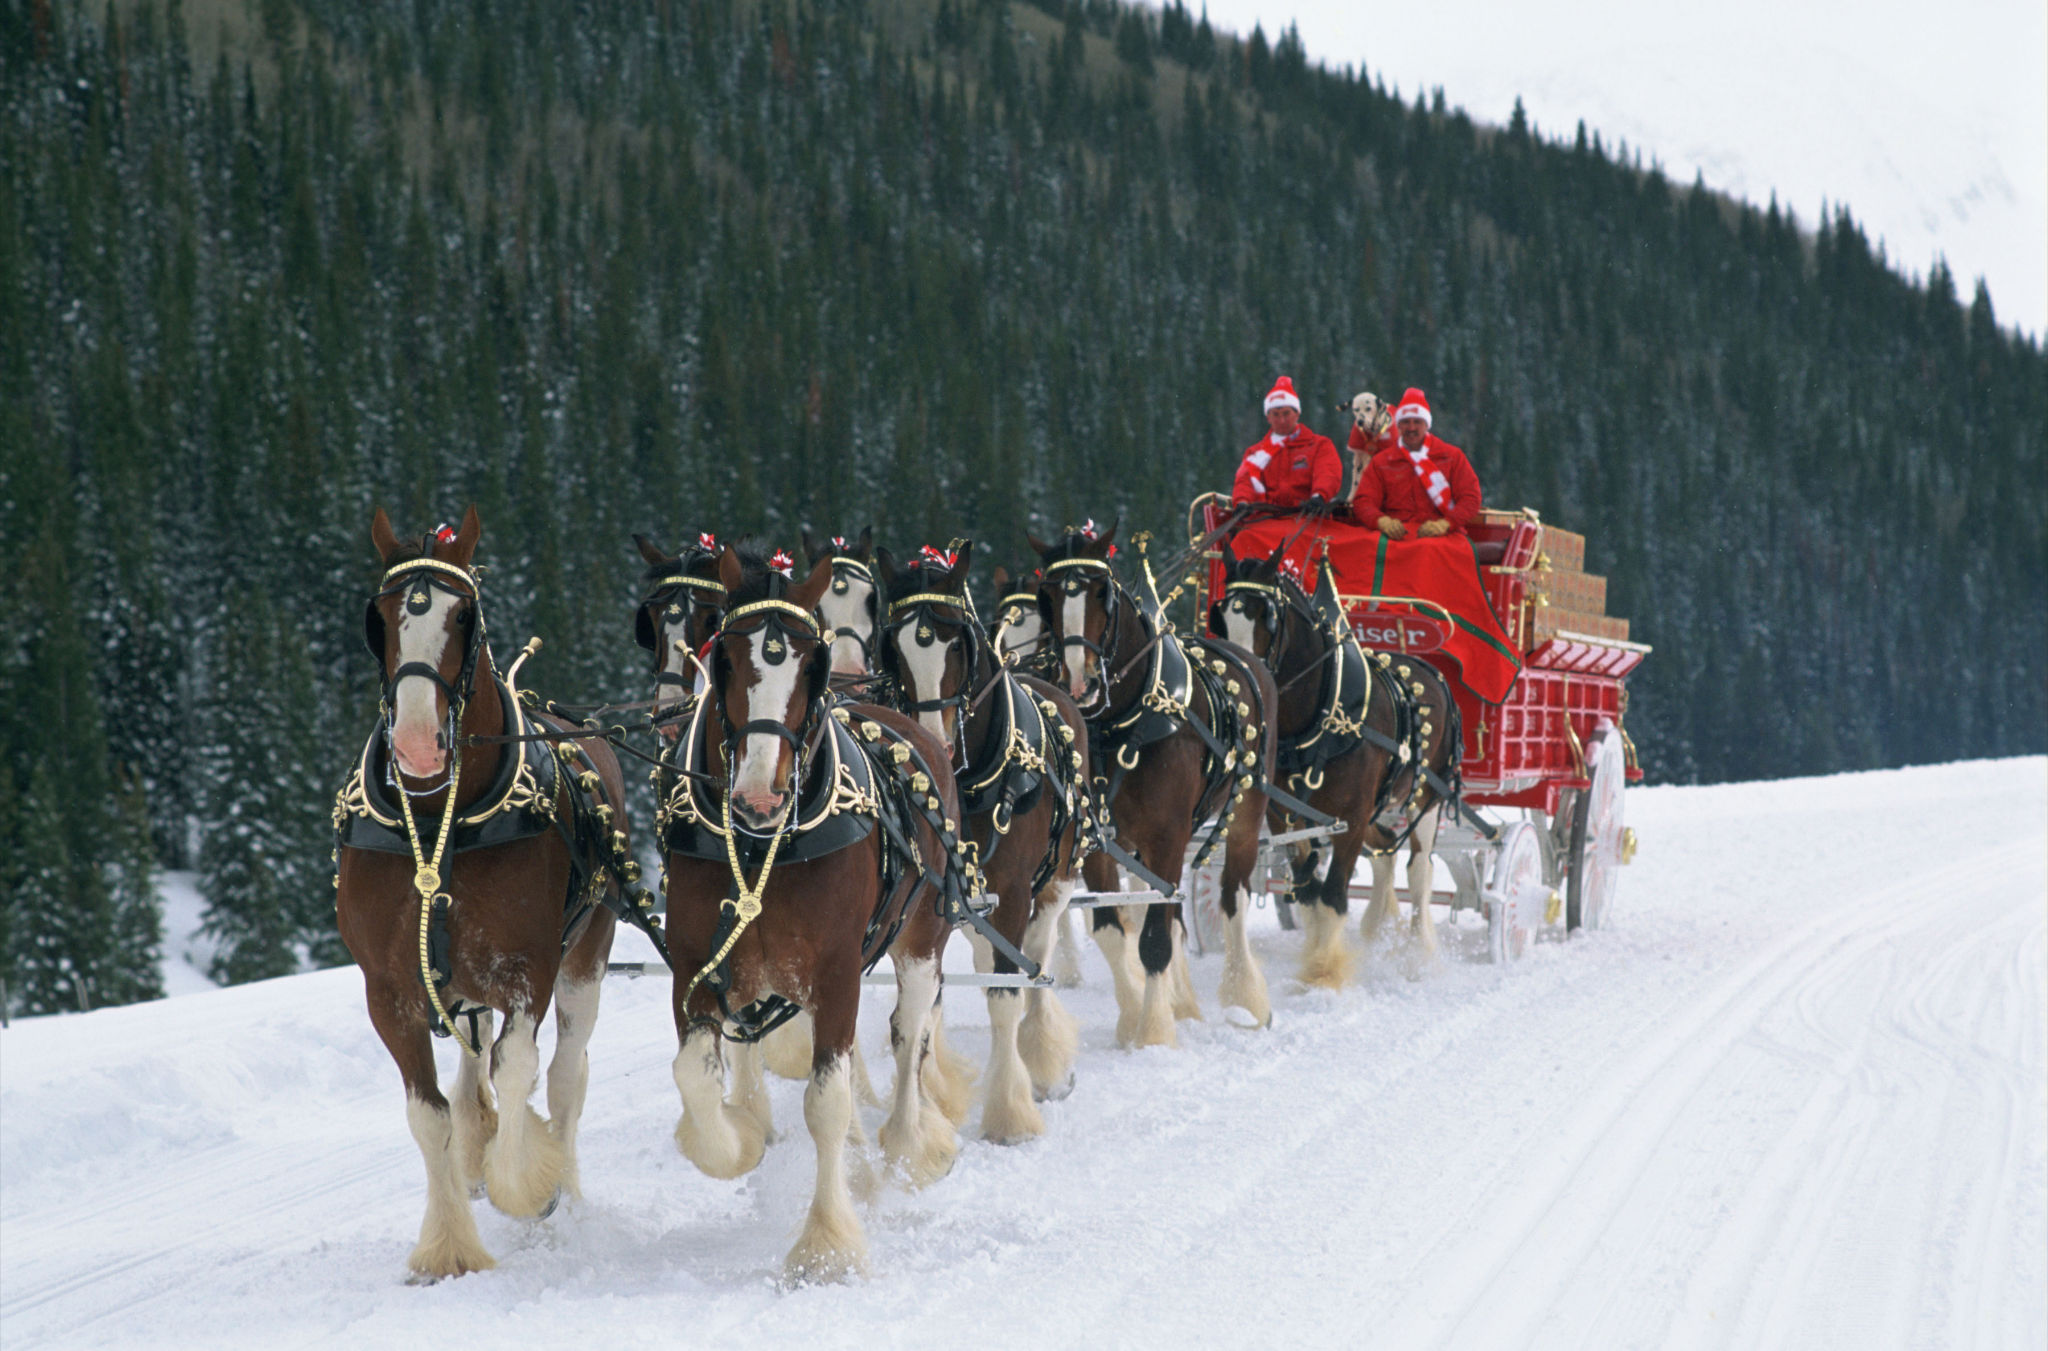 budweiser clydesdalesBudweiser Clydesdales In Snow